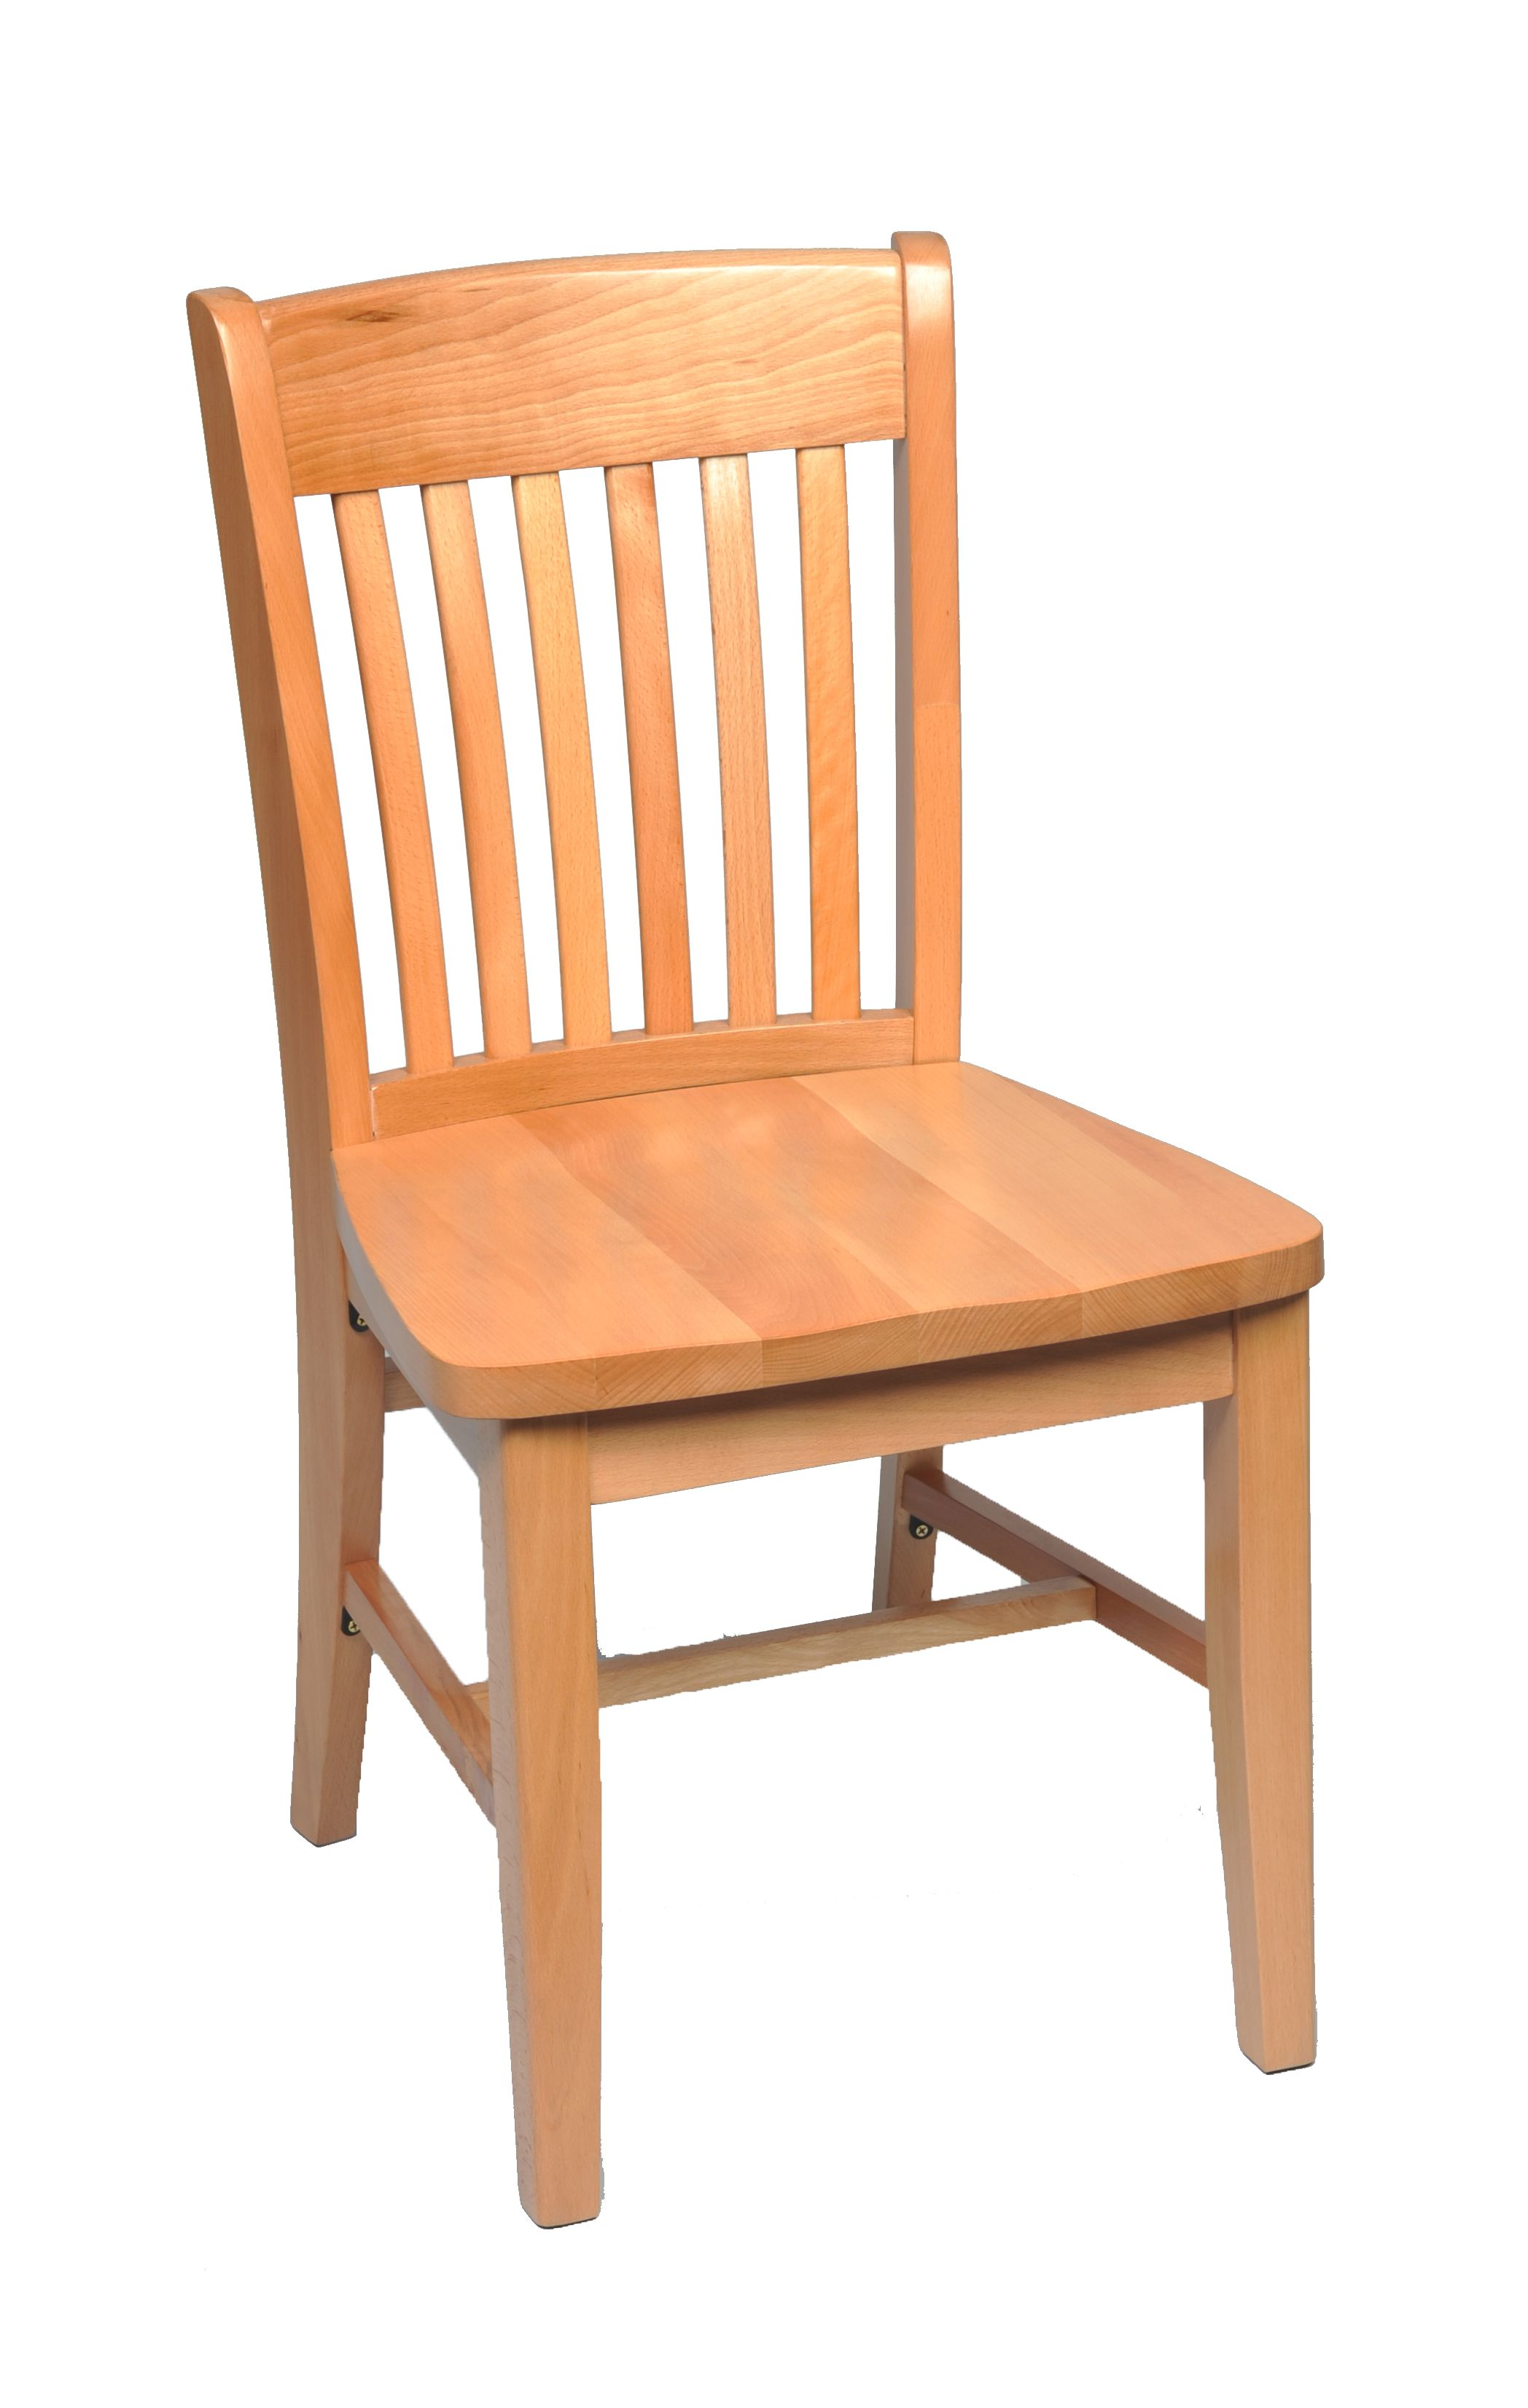 Solid wood dining chair schoolhouse solid wood dining for Wood dining room furniture